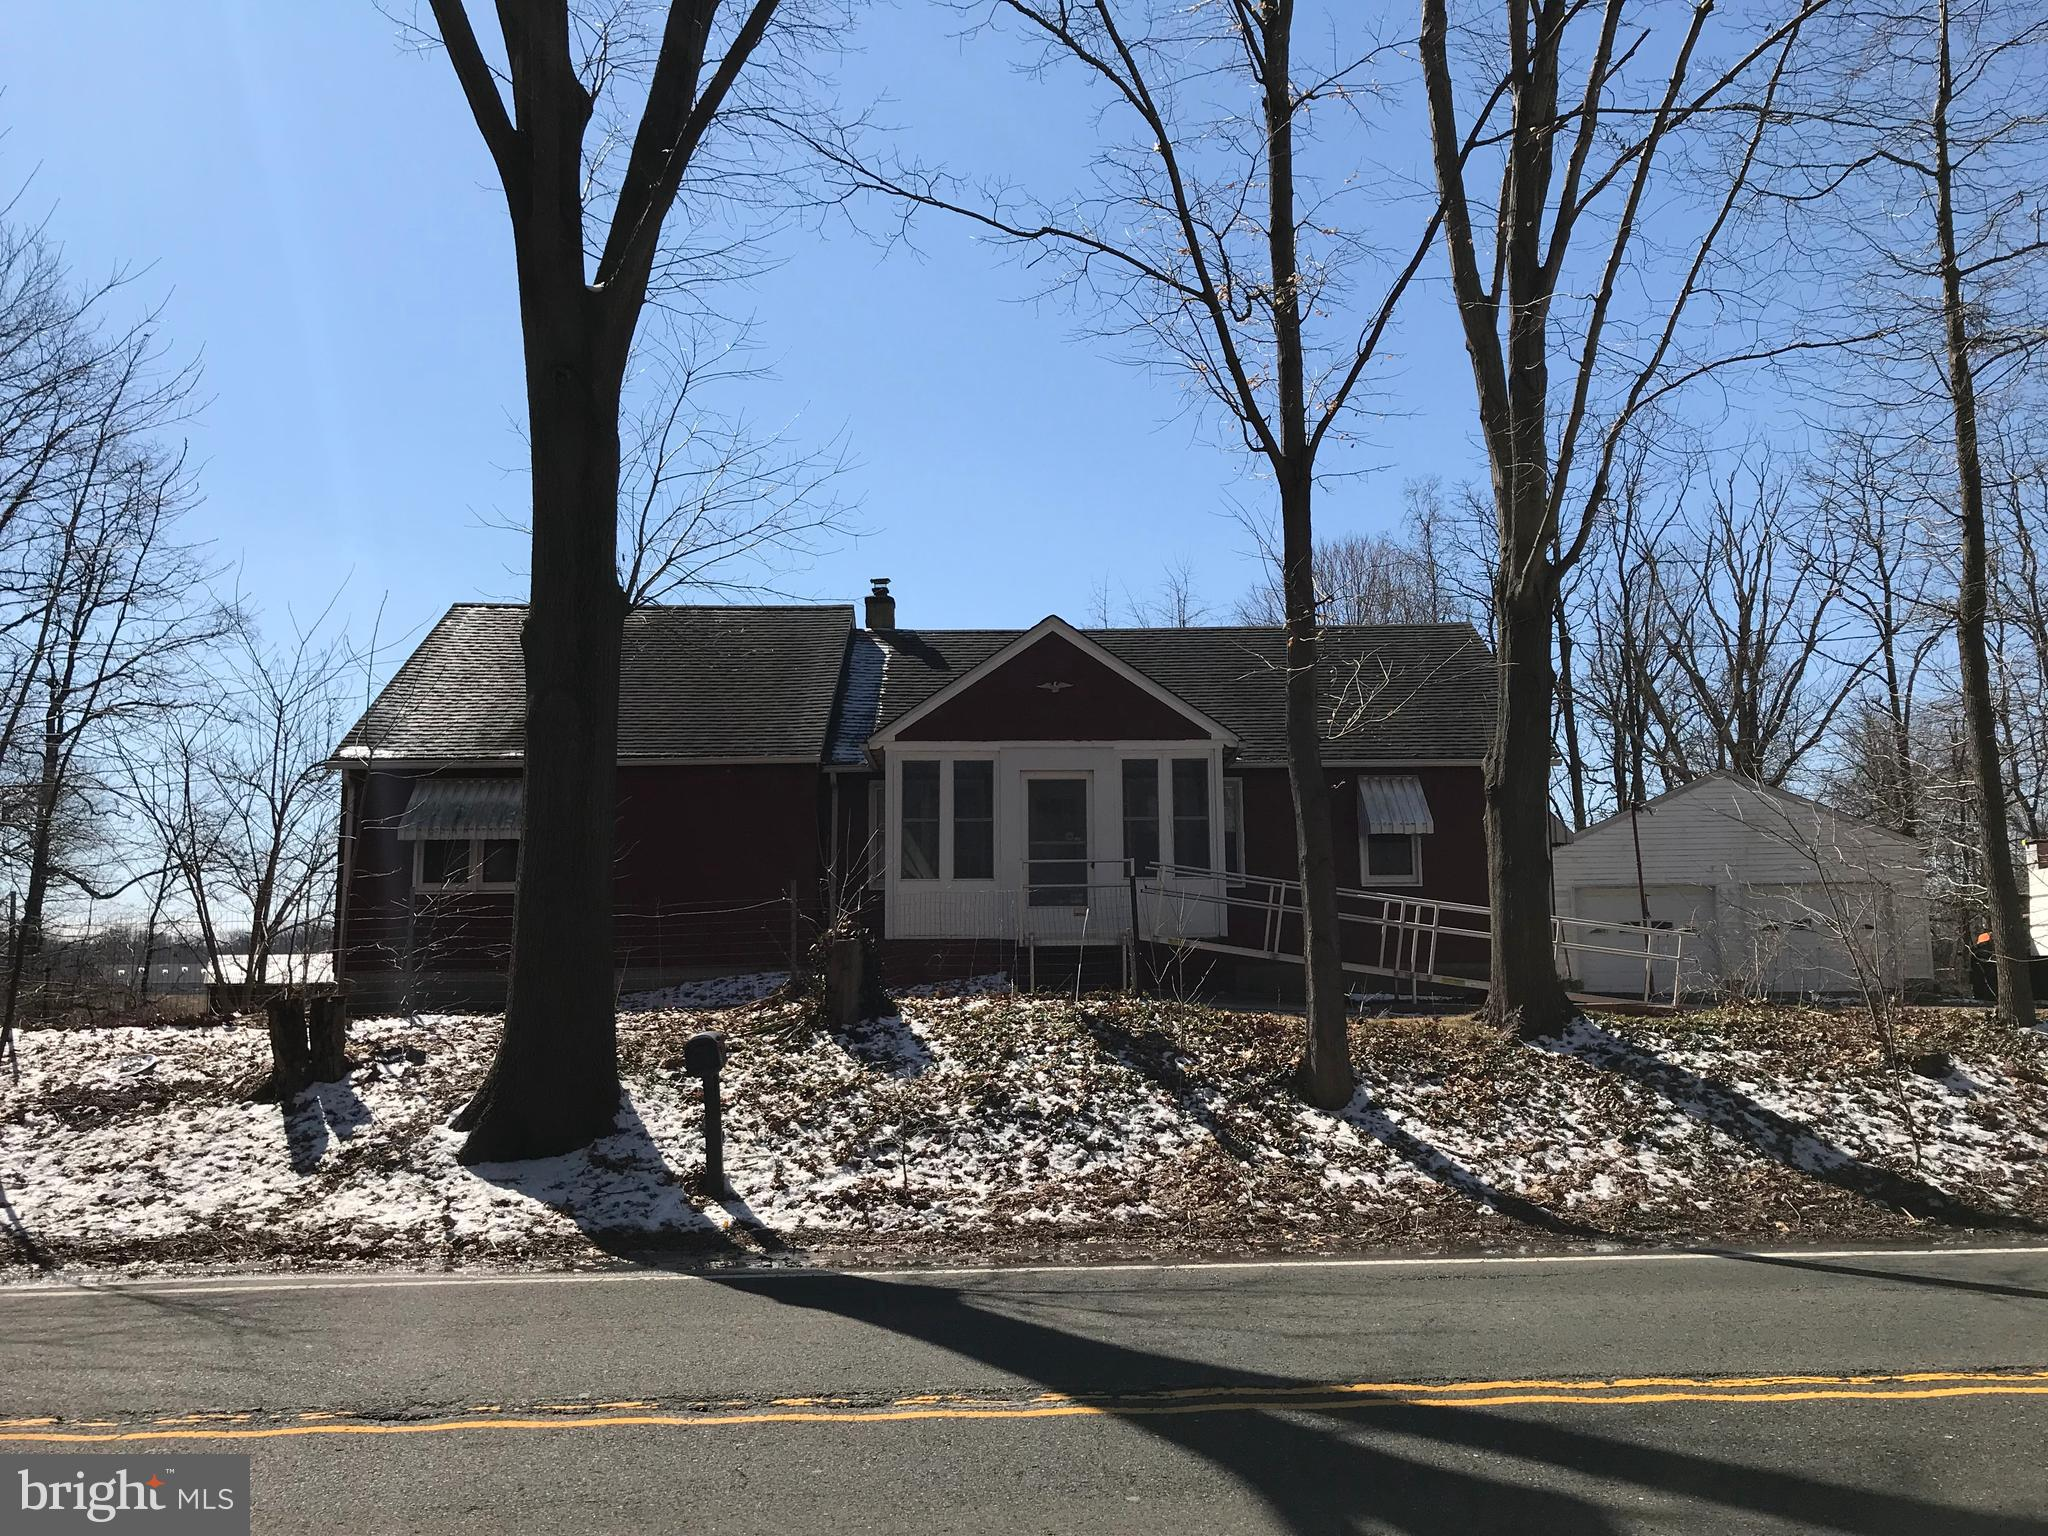 238 CHESTERFIELD JACOBSTOWN ROAD, WRIGHTSTOWN, NJ 08562